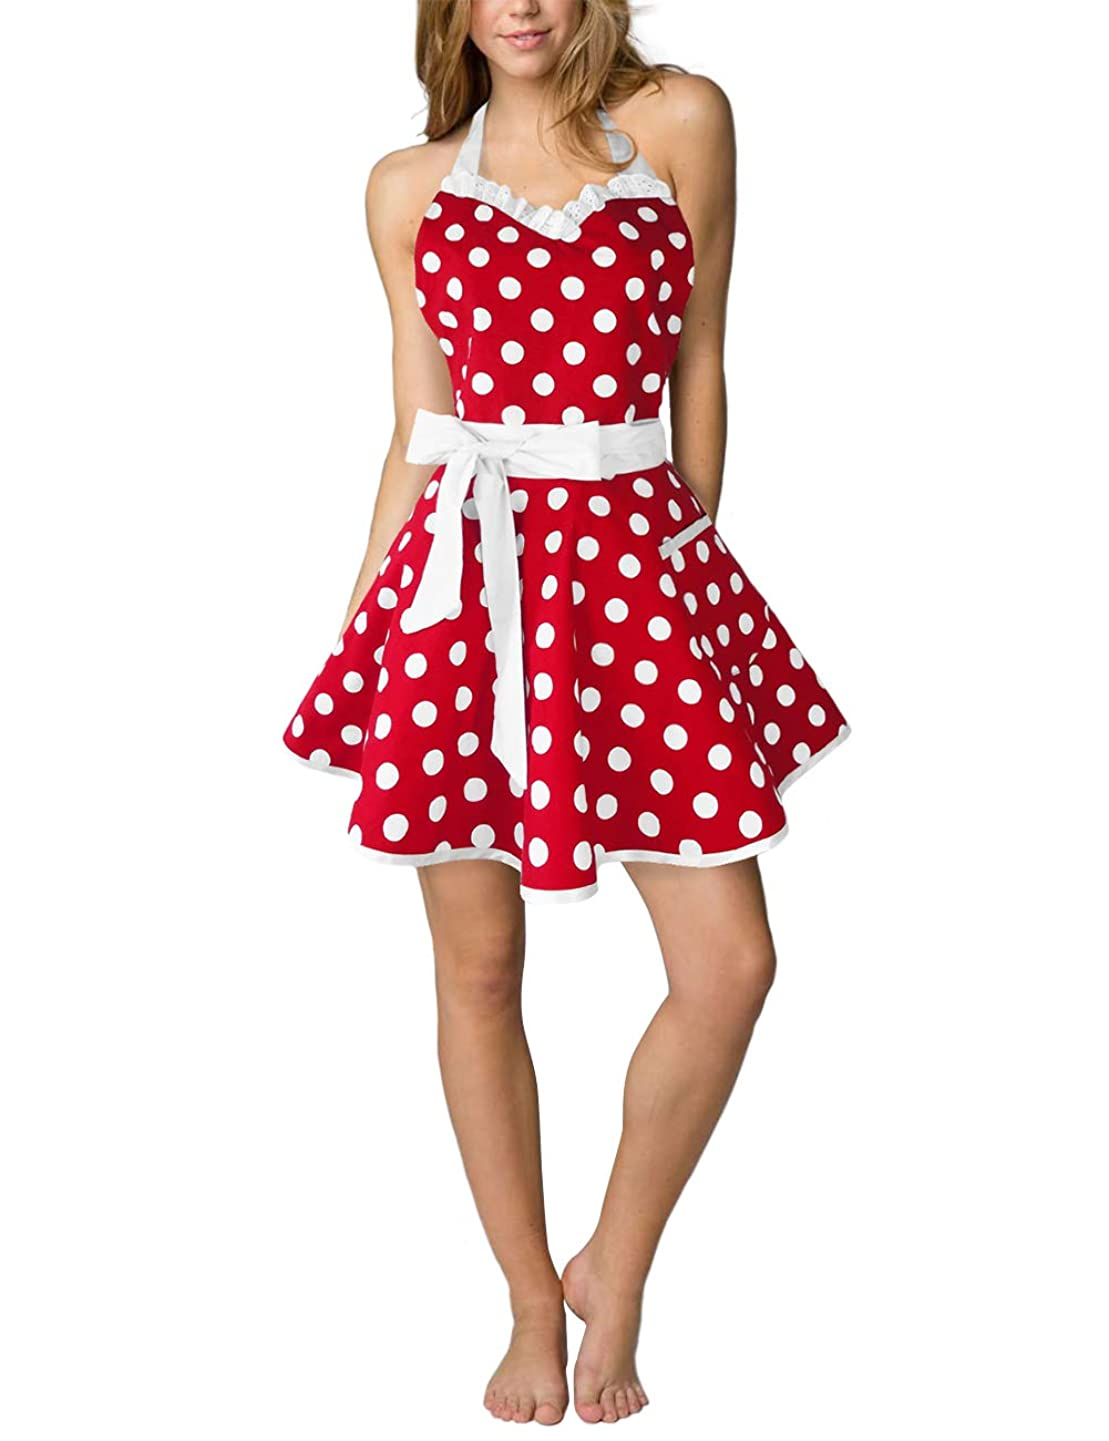 Eternity J. Cute Cotton Polka Dot Kitchen Aprons Sexy Vintage Apron Dress Retro Baking Cooking Salon Pinafore Maid Costume for Women Girls